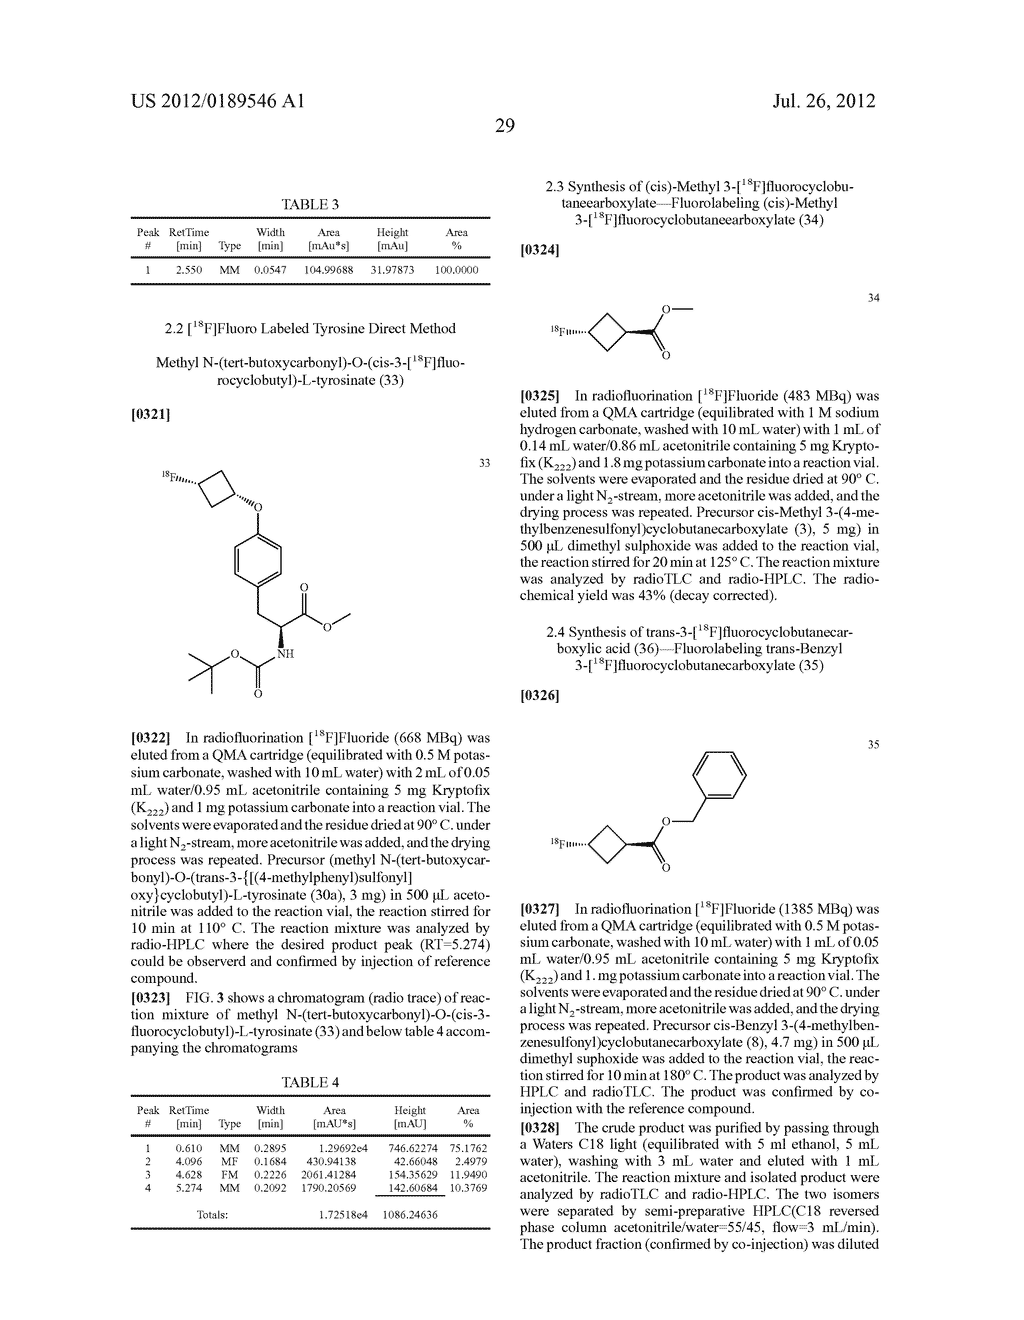 Radiolabelling Method Using Cycloalkyl Groups - diagram, schematic, and image 39